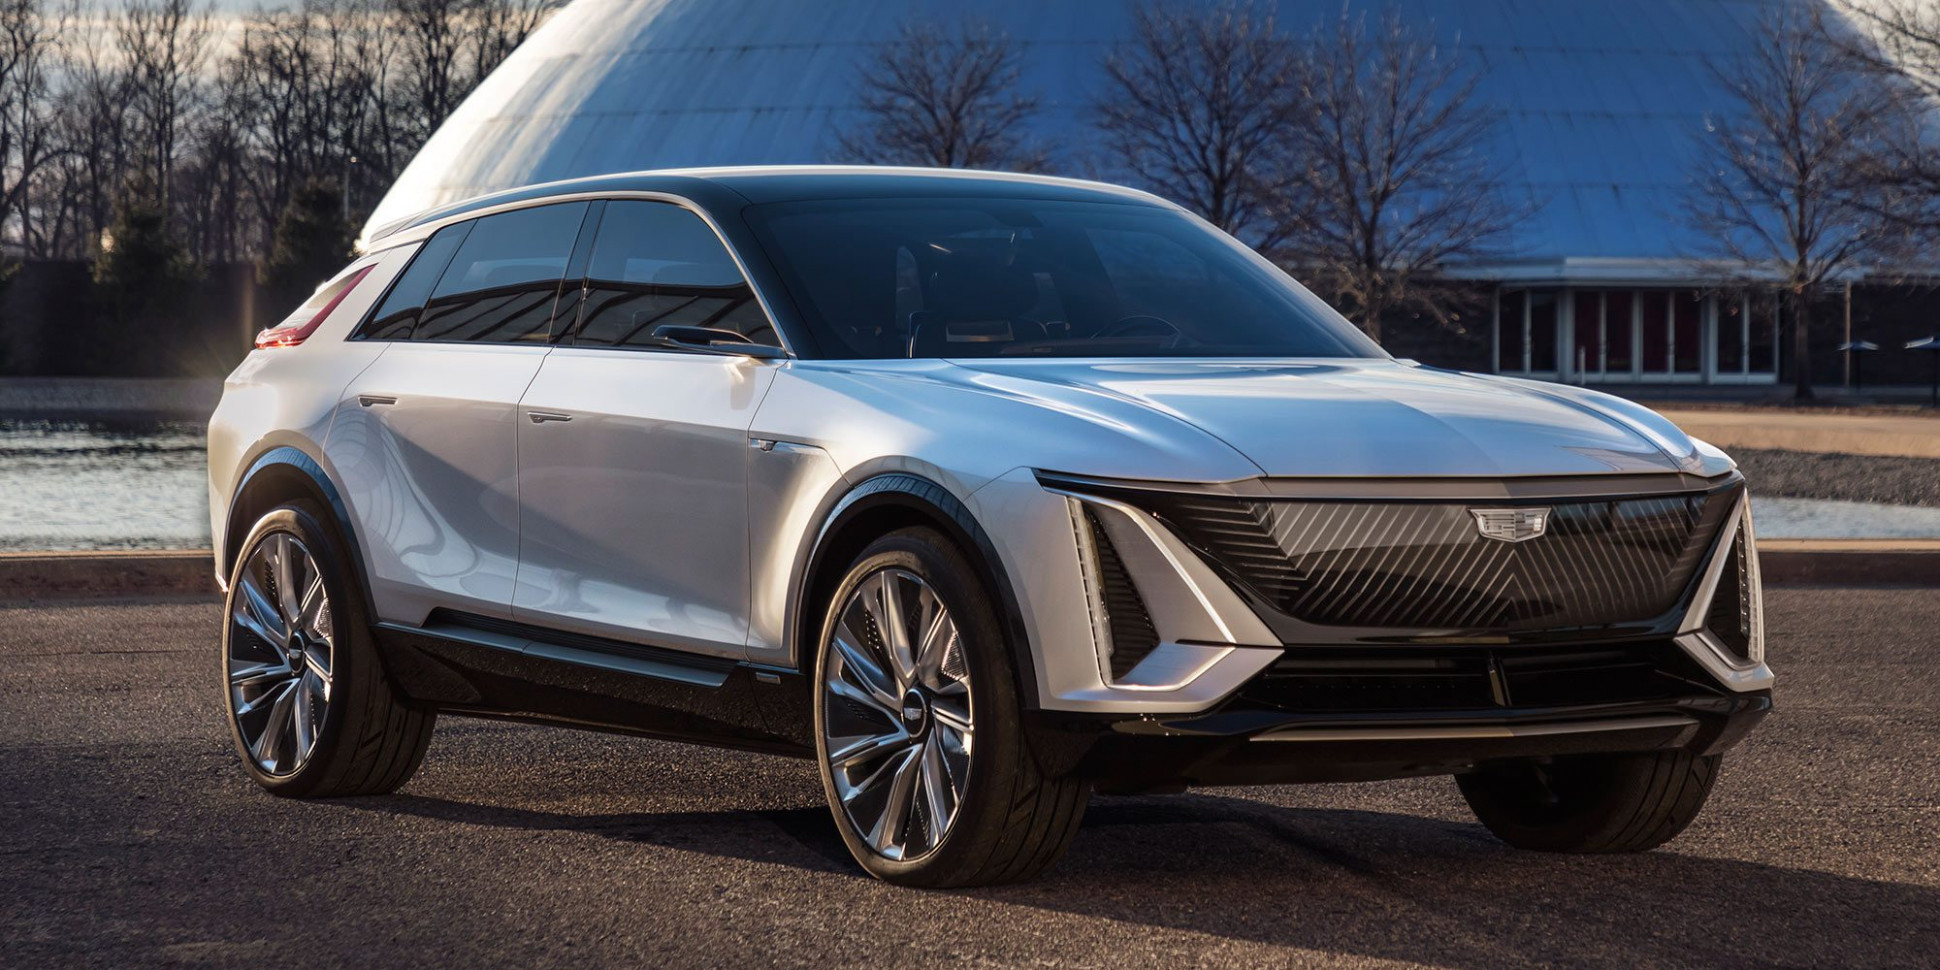 Release Date What Cars Will Cadillac Make In 2022